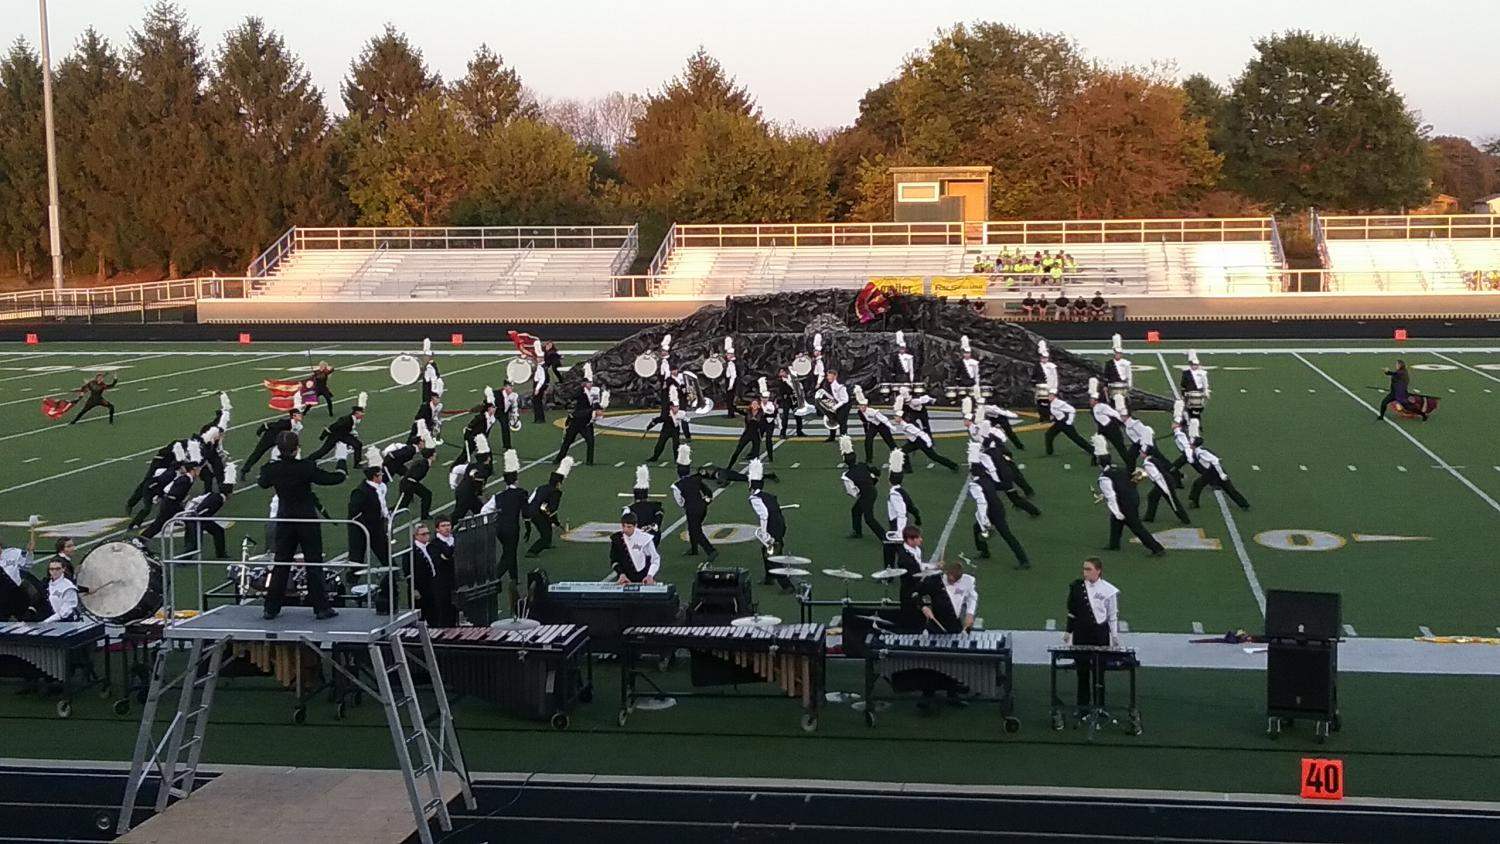 The band placed second at their competition at Greenwood on September 23.